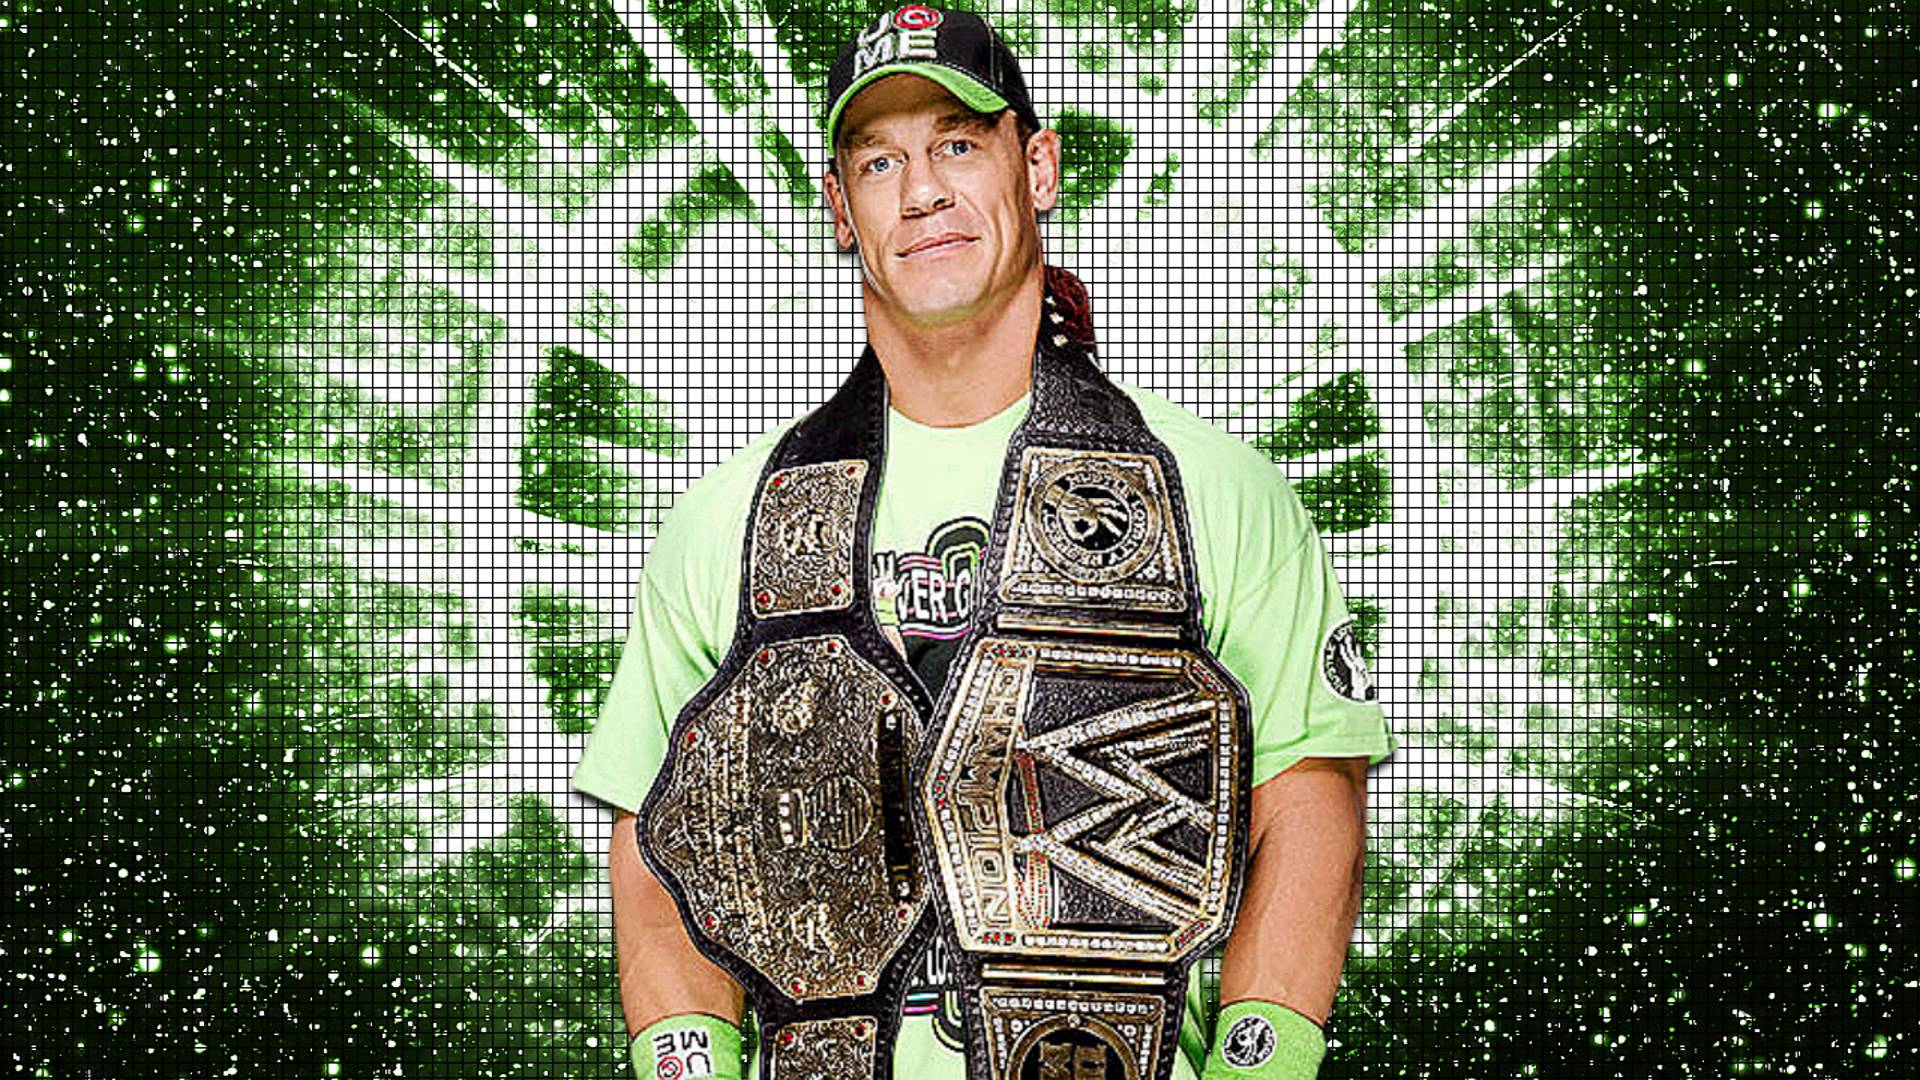 wwe super star john cena with belts free download hd mobile background pictures